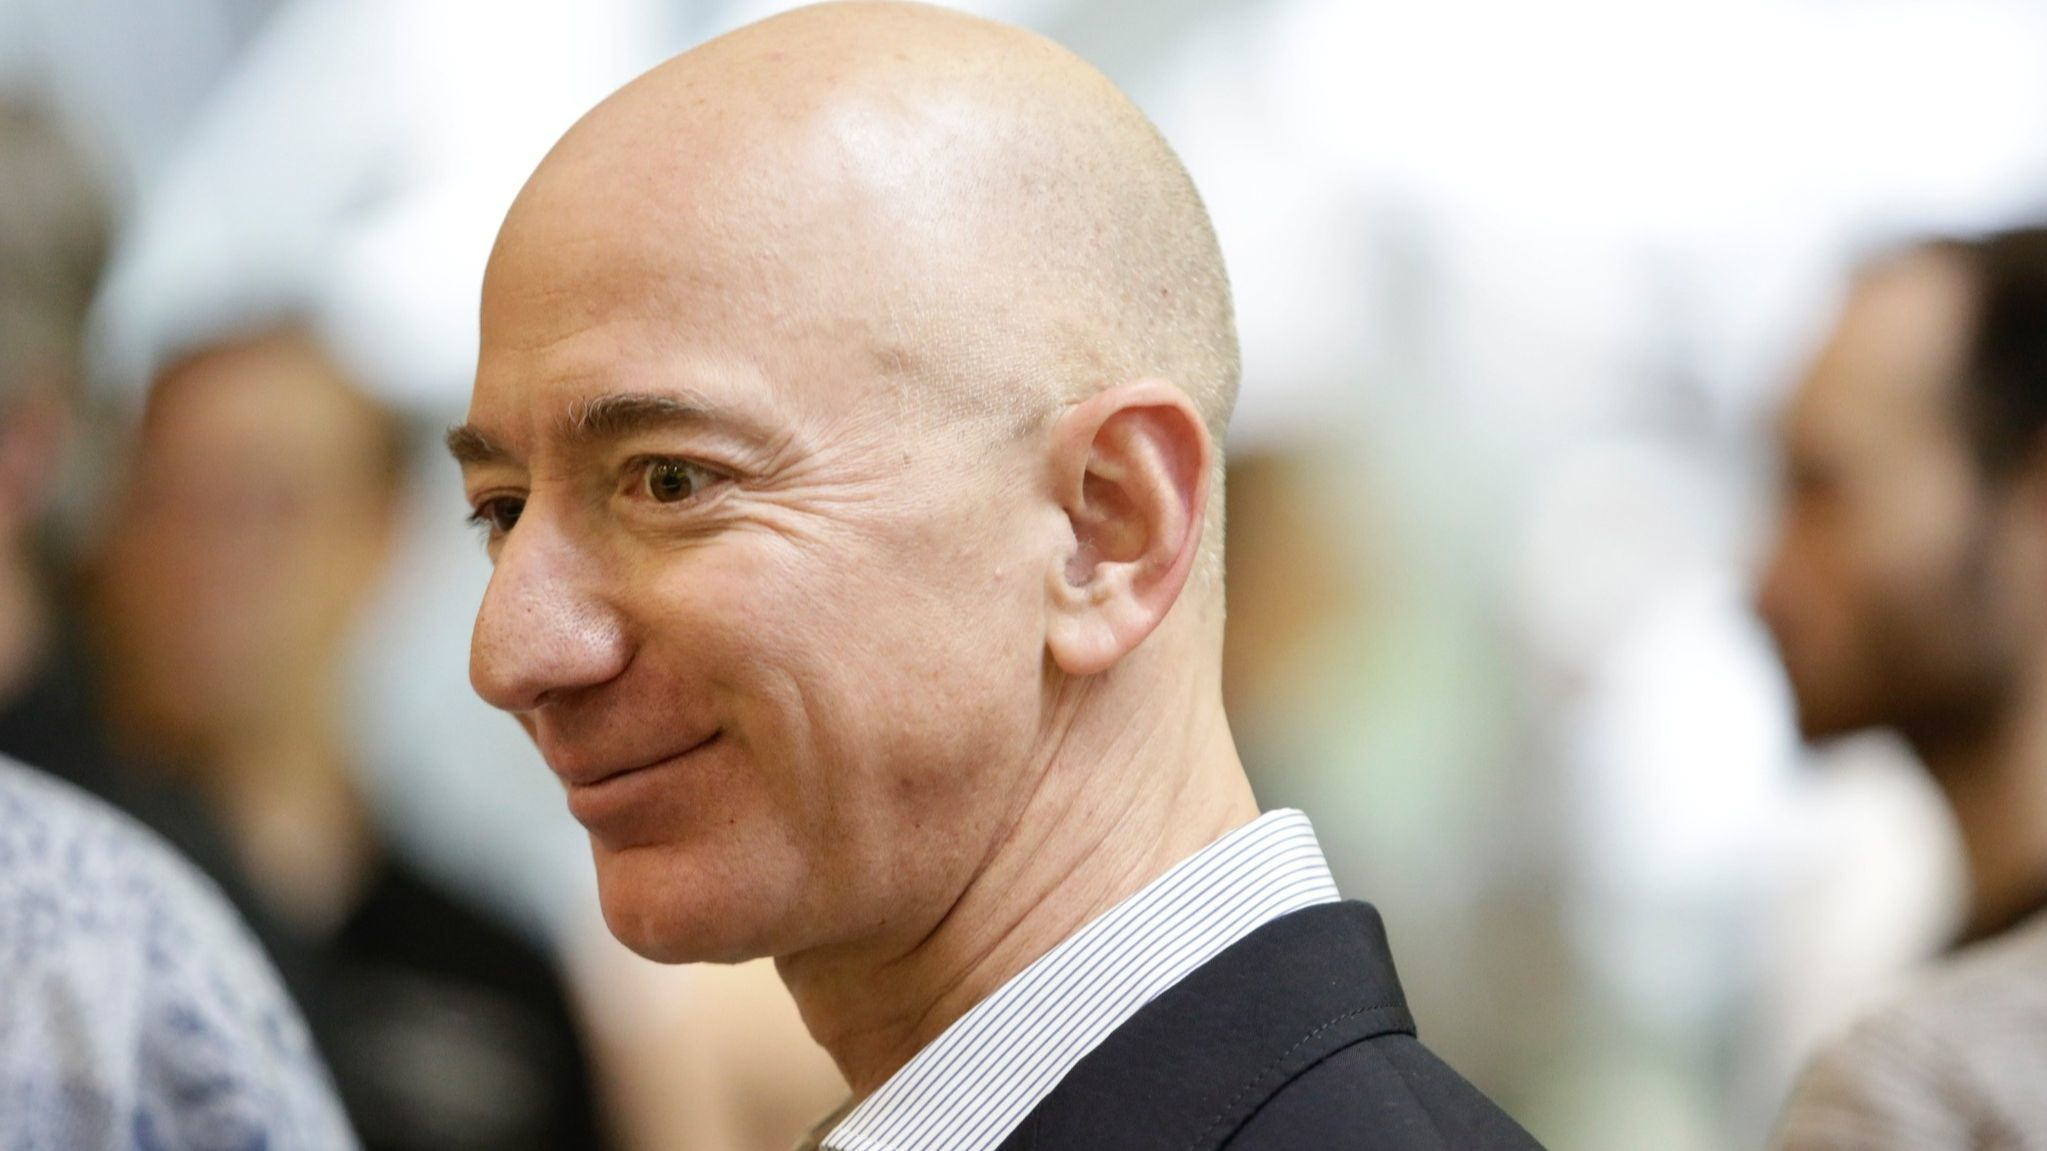 Tabloid CEO's lawyer denies National Enquirer tried to extort Amazon's Jeff Bezos